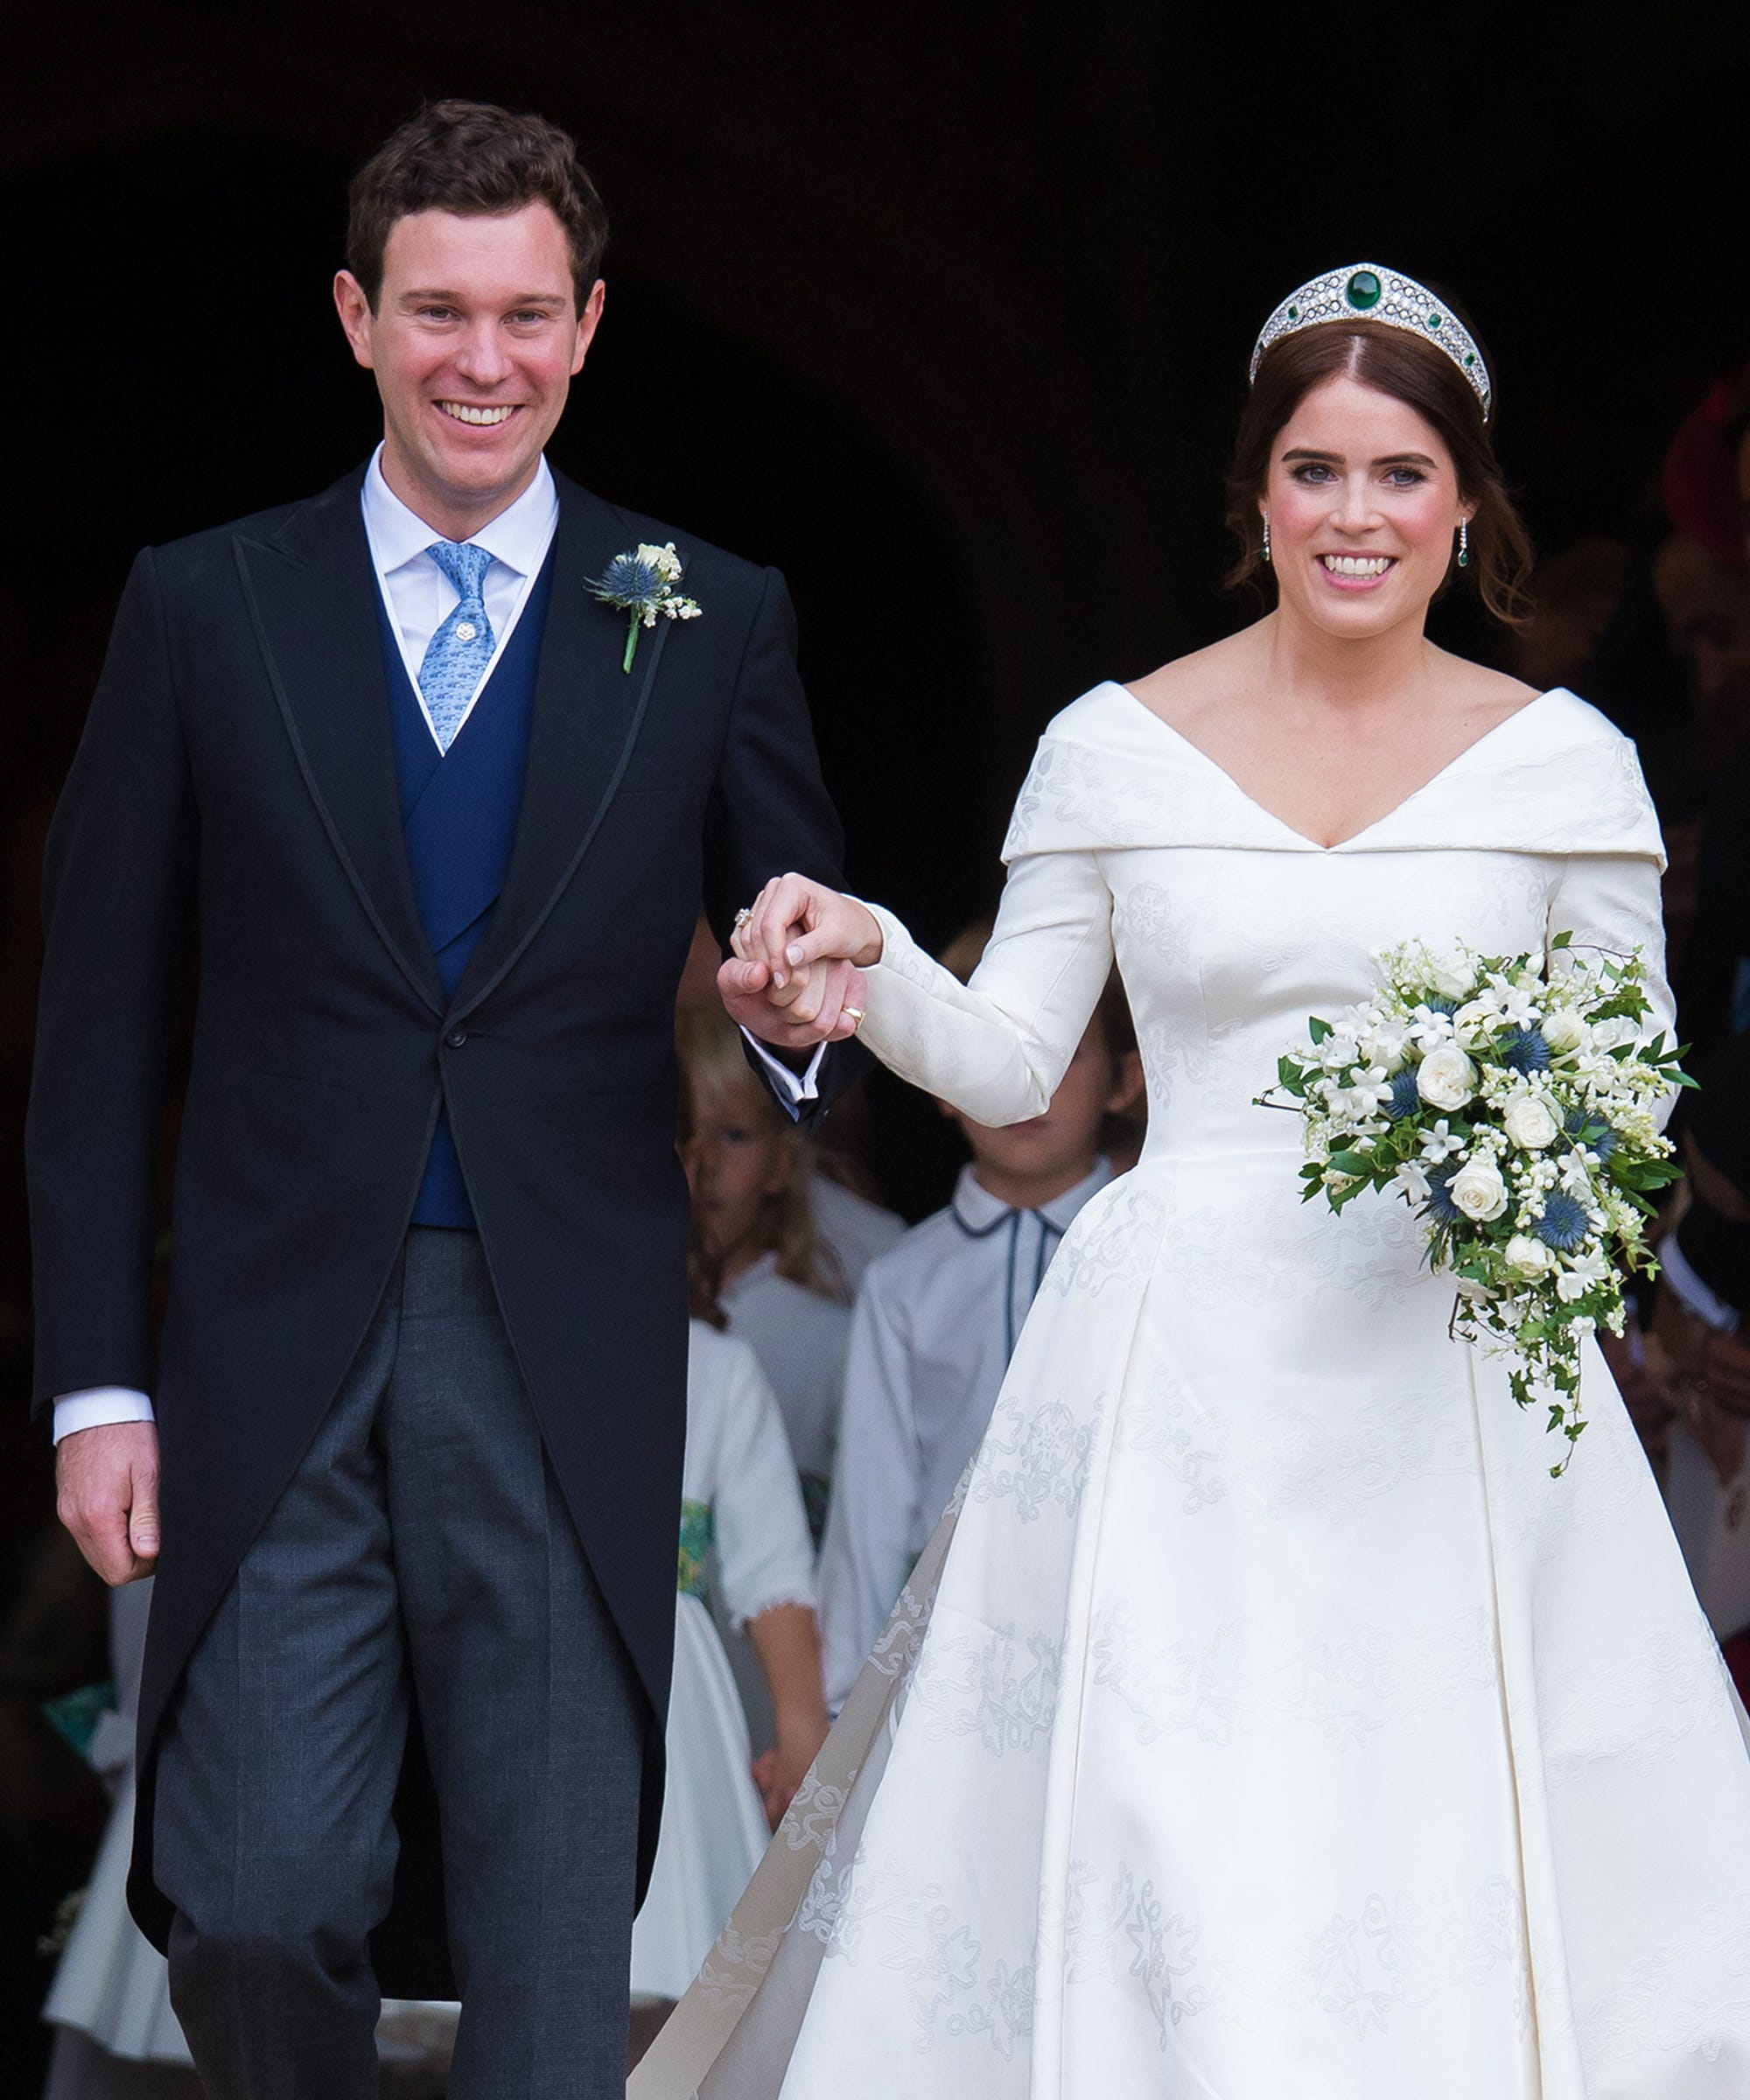 Princess Eugenie's Wedding Revealed Big Differences In British American Traditions: Wedding Dress Booze Funny At Websimilar.org